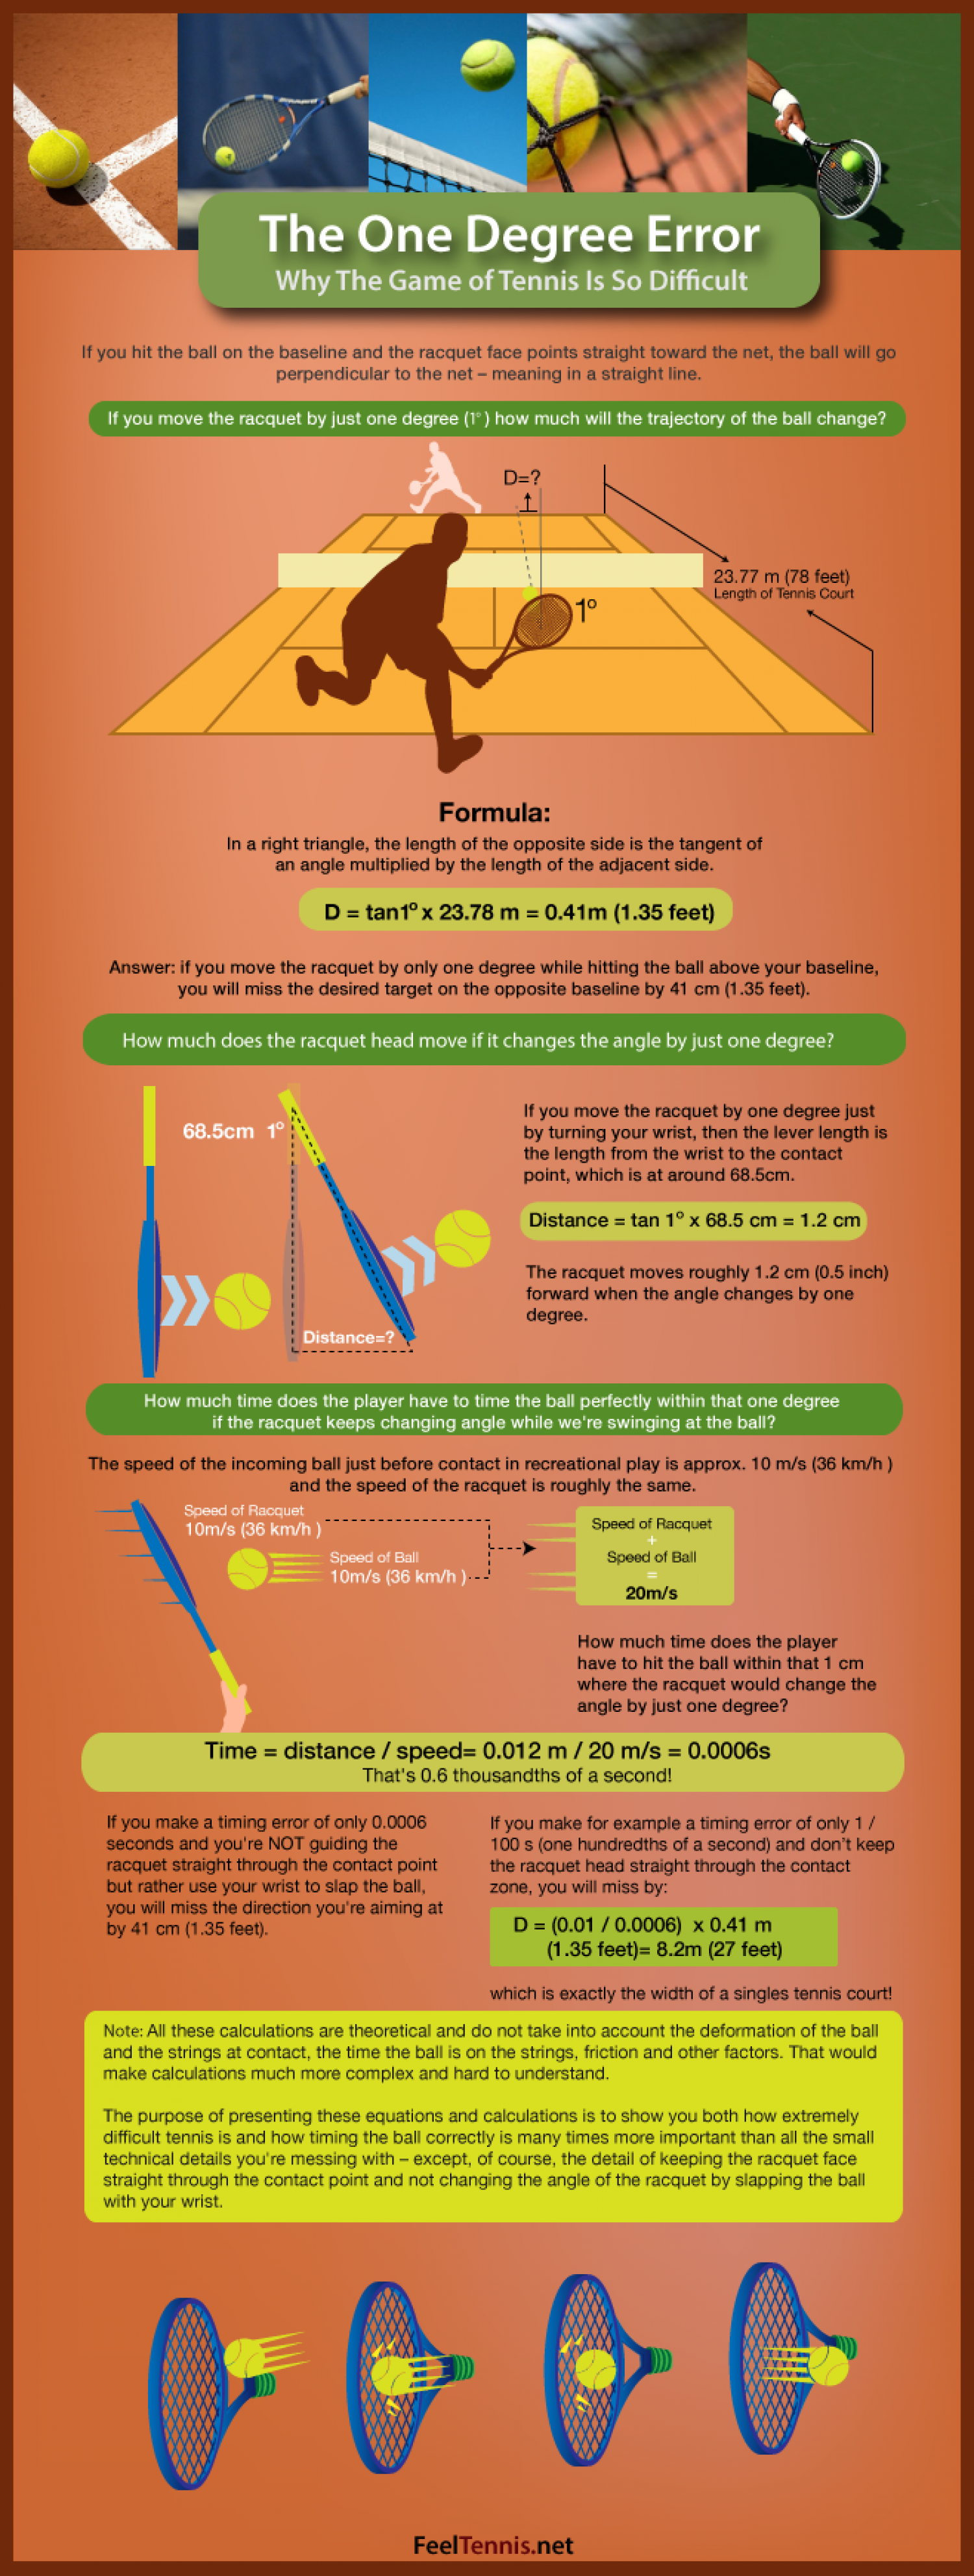 The One Degree Error: Why The Game of Tennis Is So Difficult Infographic